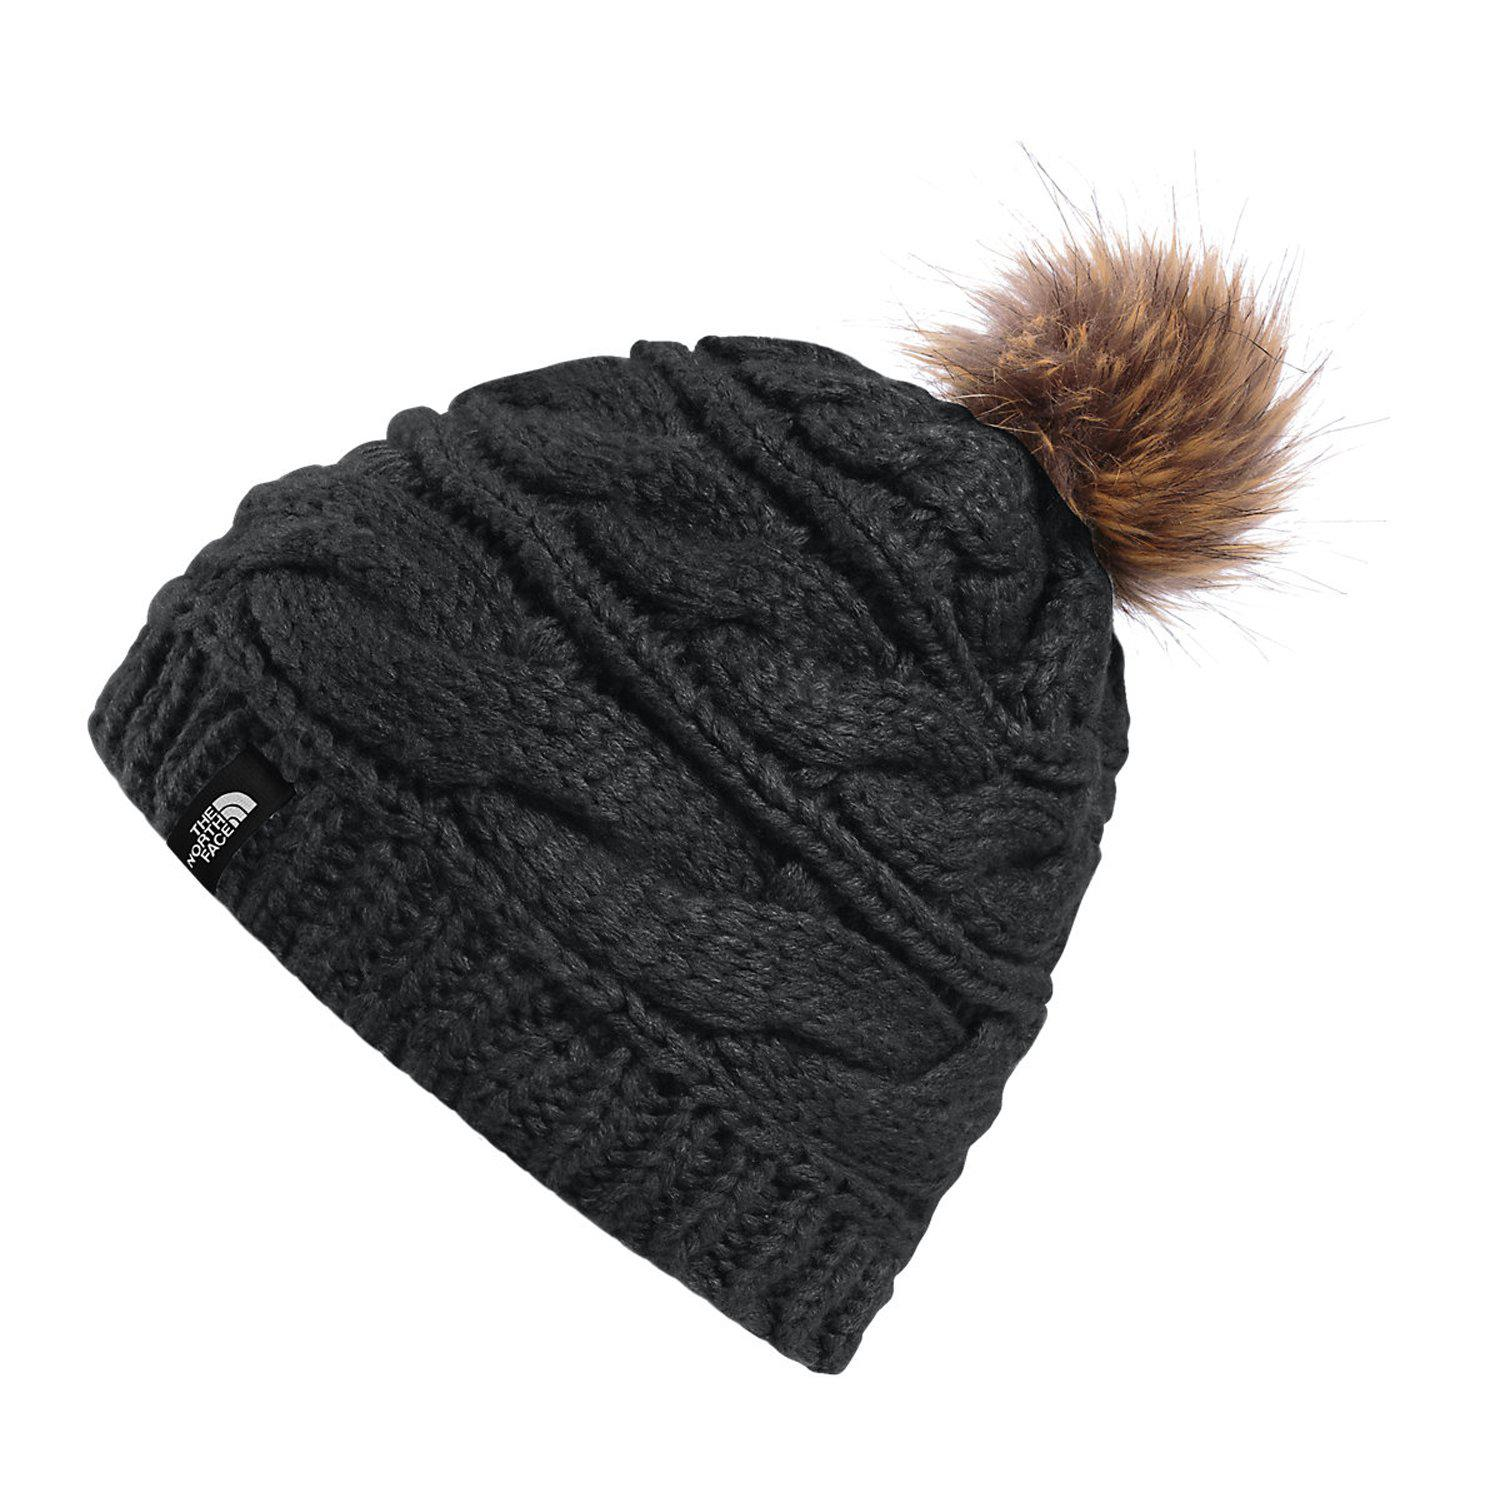 75f75f5f1b2 Lyst - The North Face Triple Cable Fur Pom Beanie in Black